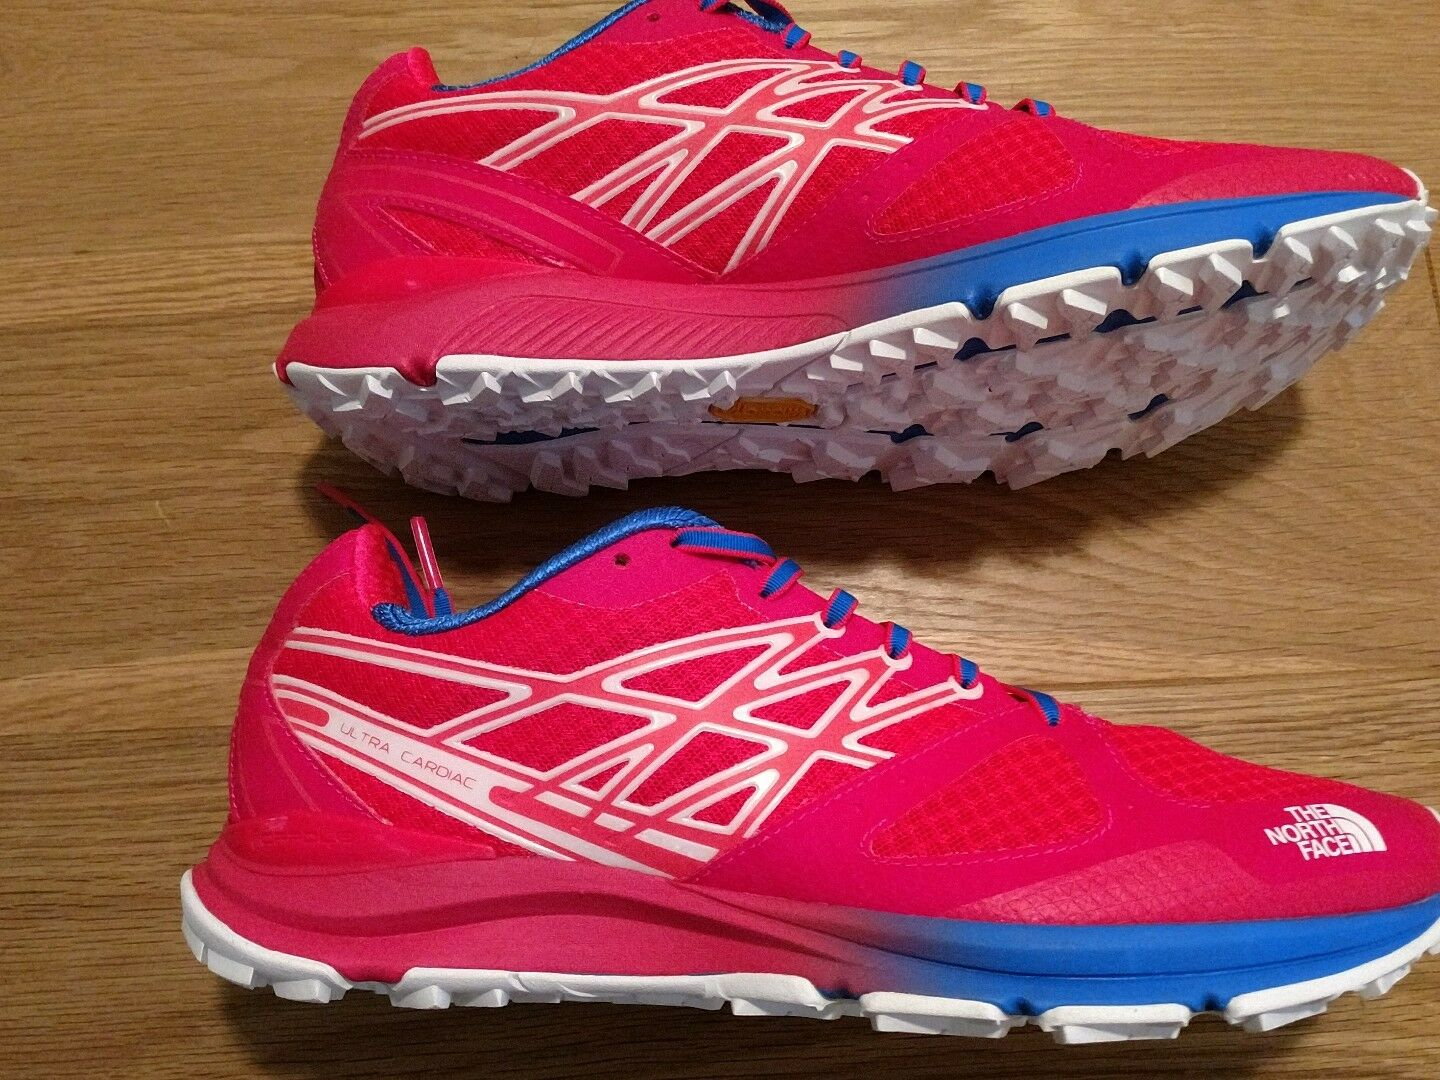 BNWT North Face Women Ultra Cardiac Trail shoes Trainers Red Pink UK 8.5 EU 41.5